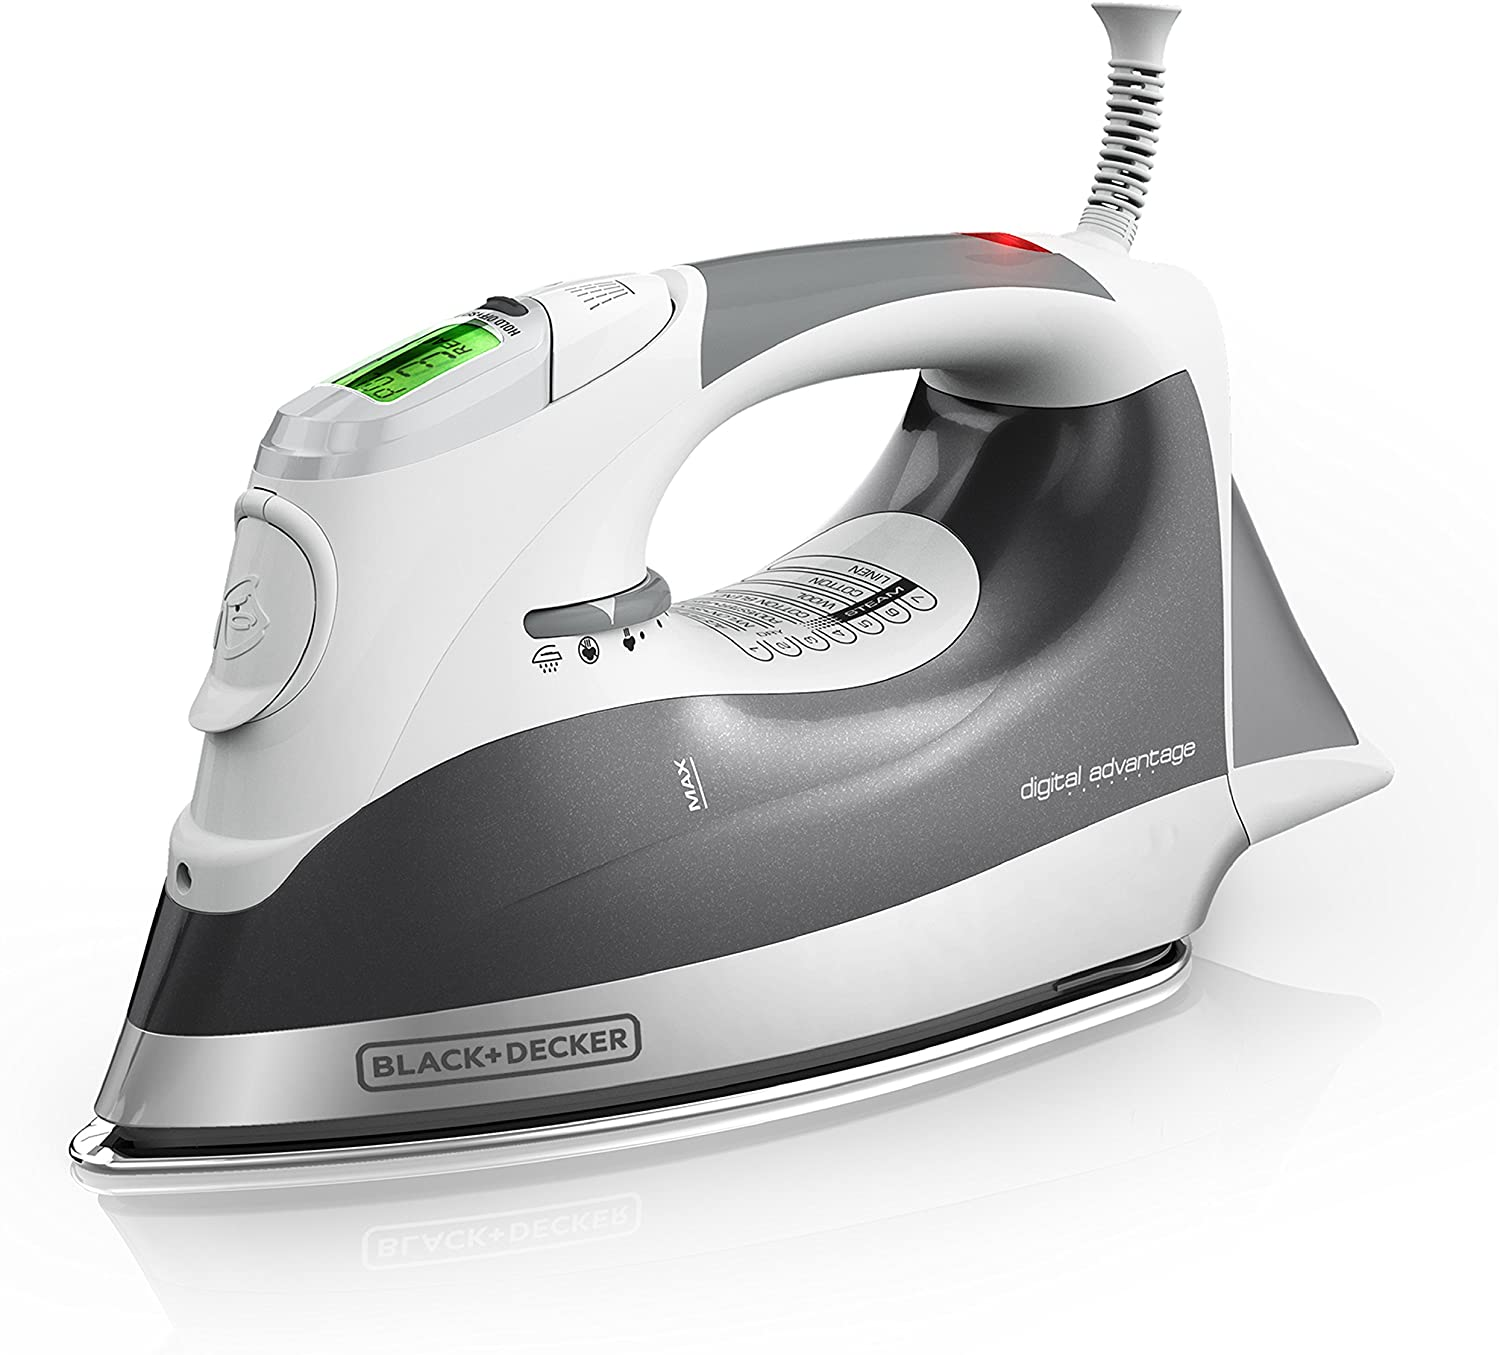 Best affordable iron: Black & Decker Advantage Professional D2030 Steam Iron